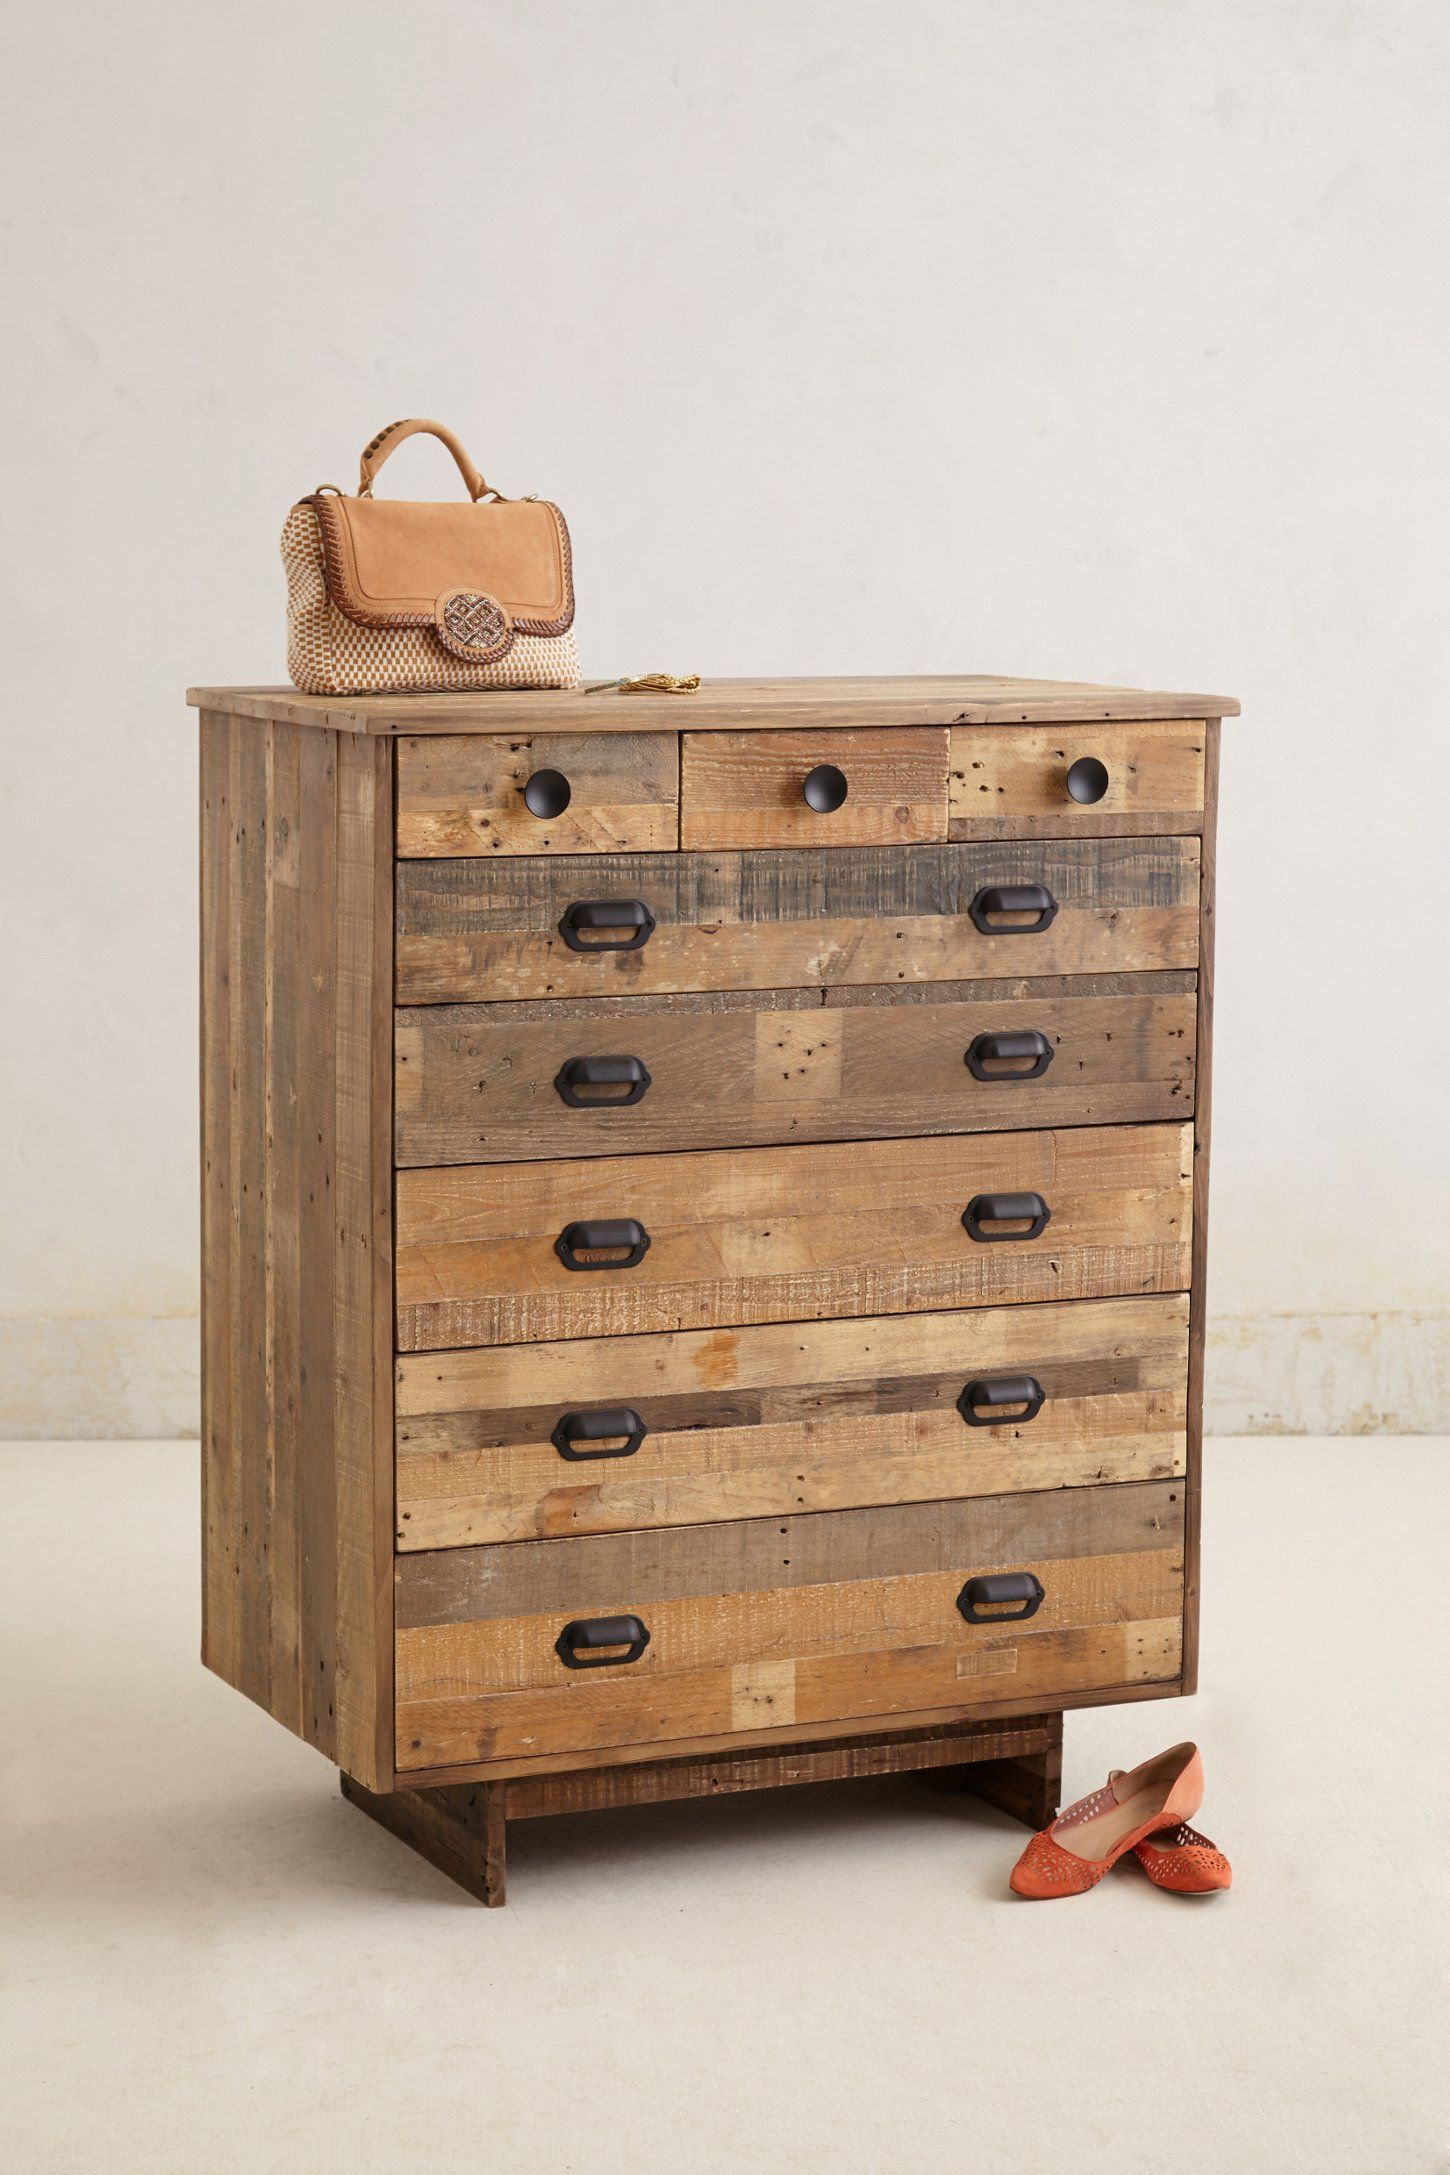 Handcrafted Marpole Dresser Could Make A Similar With Pallet Wood Or Old